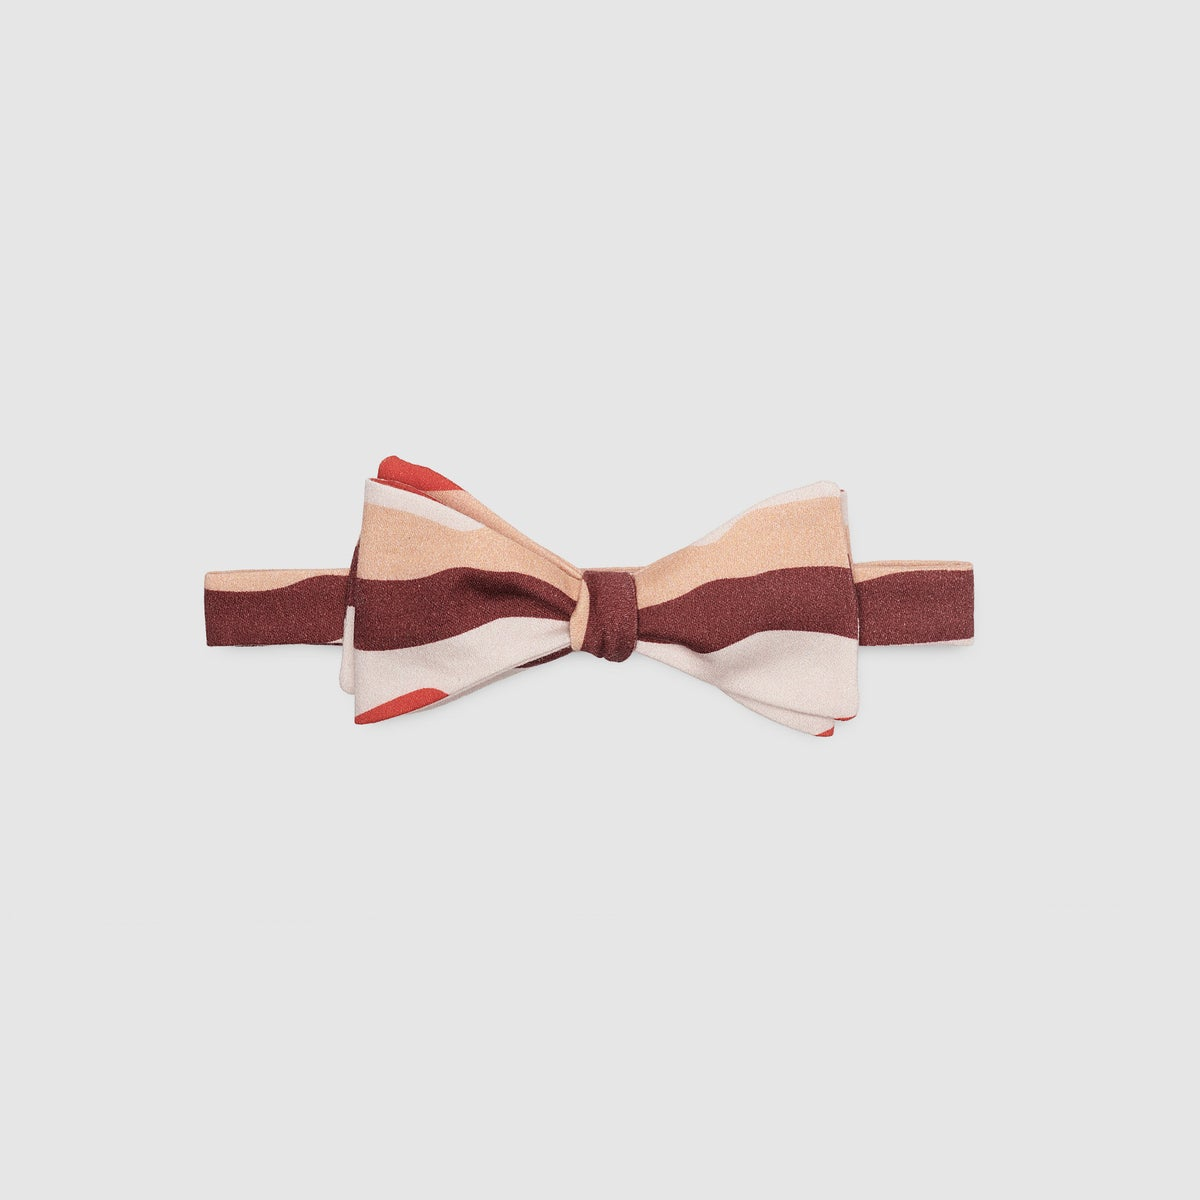 Image of OTTAWA - the bow tie